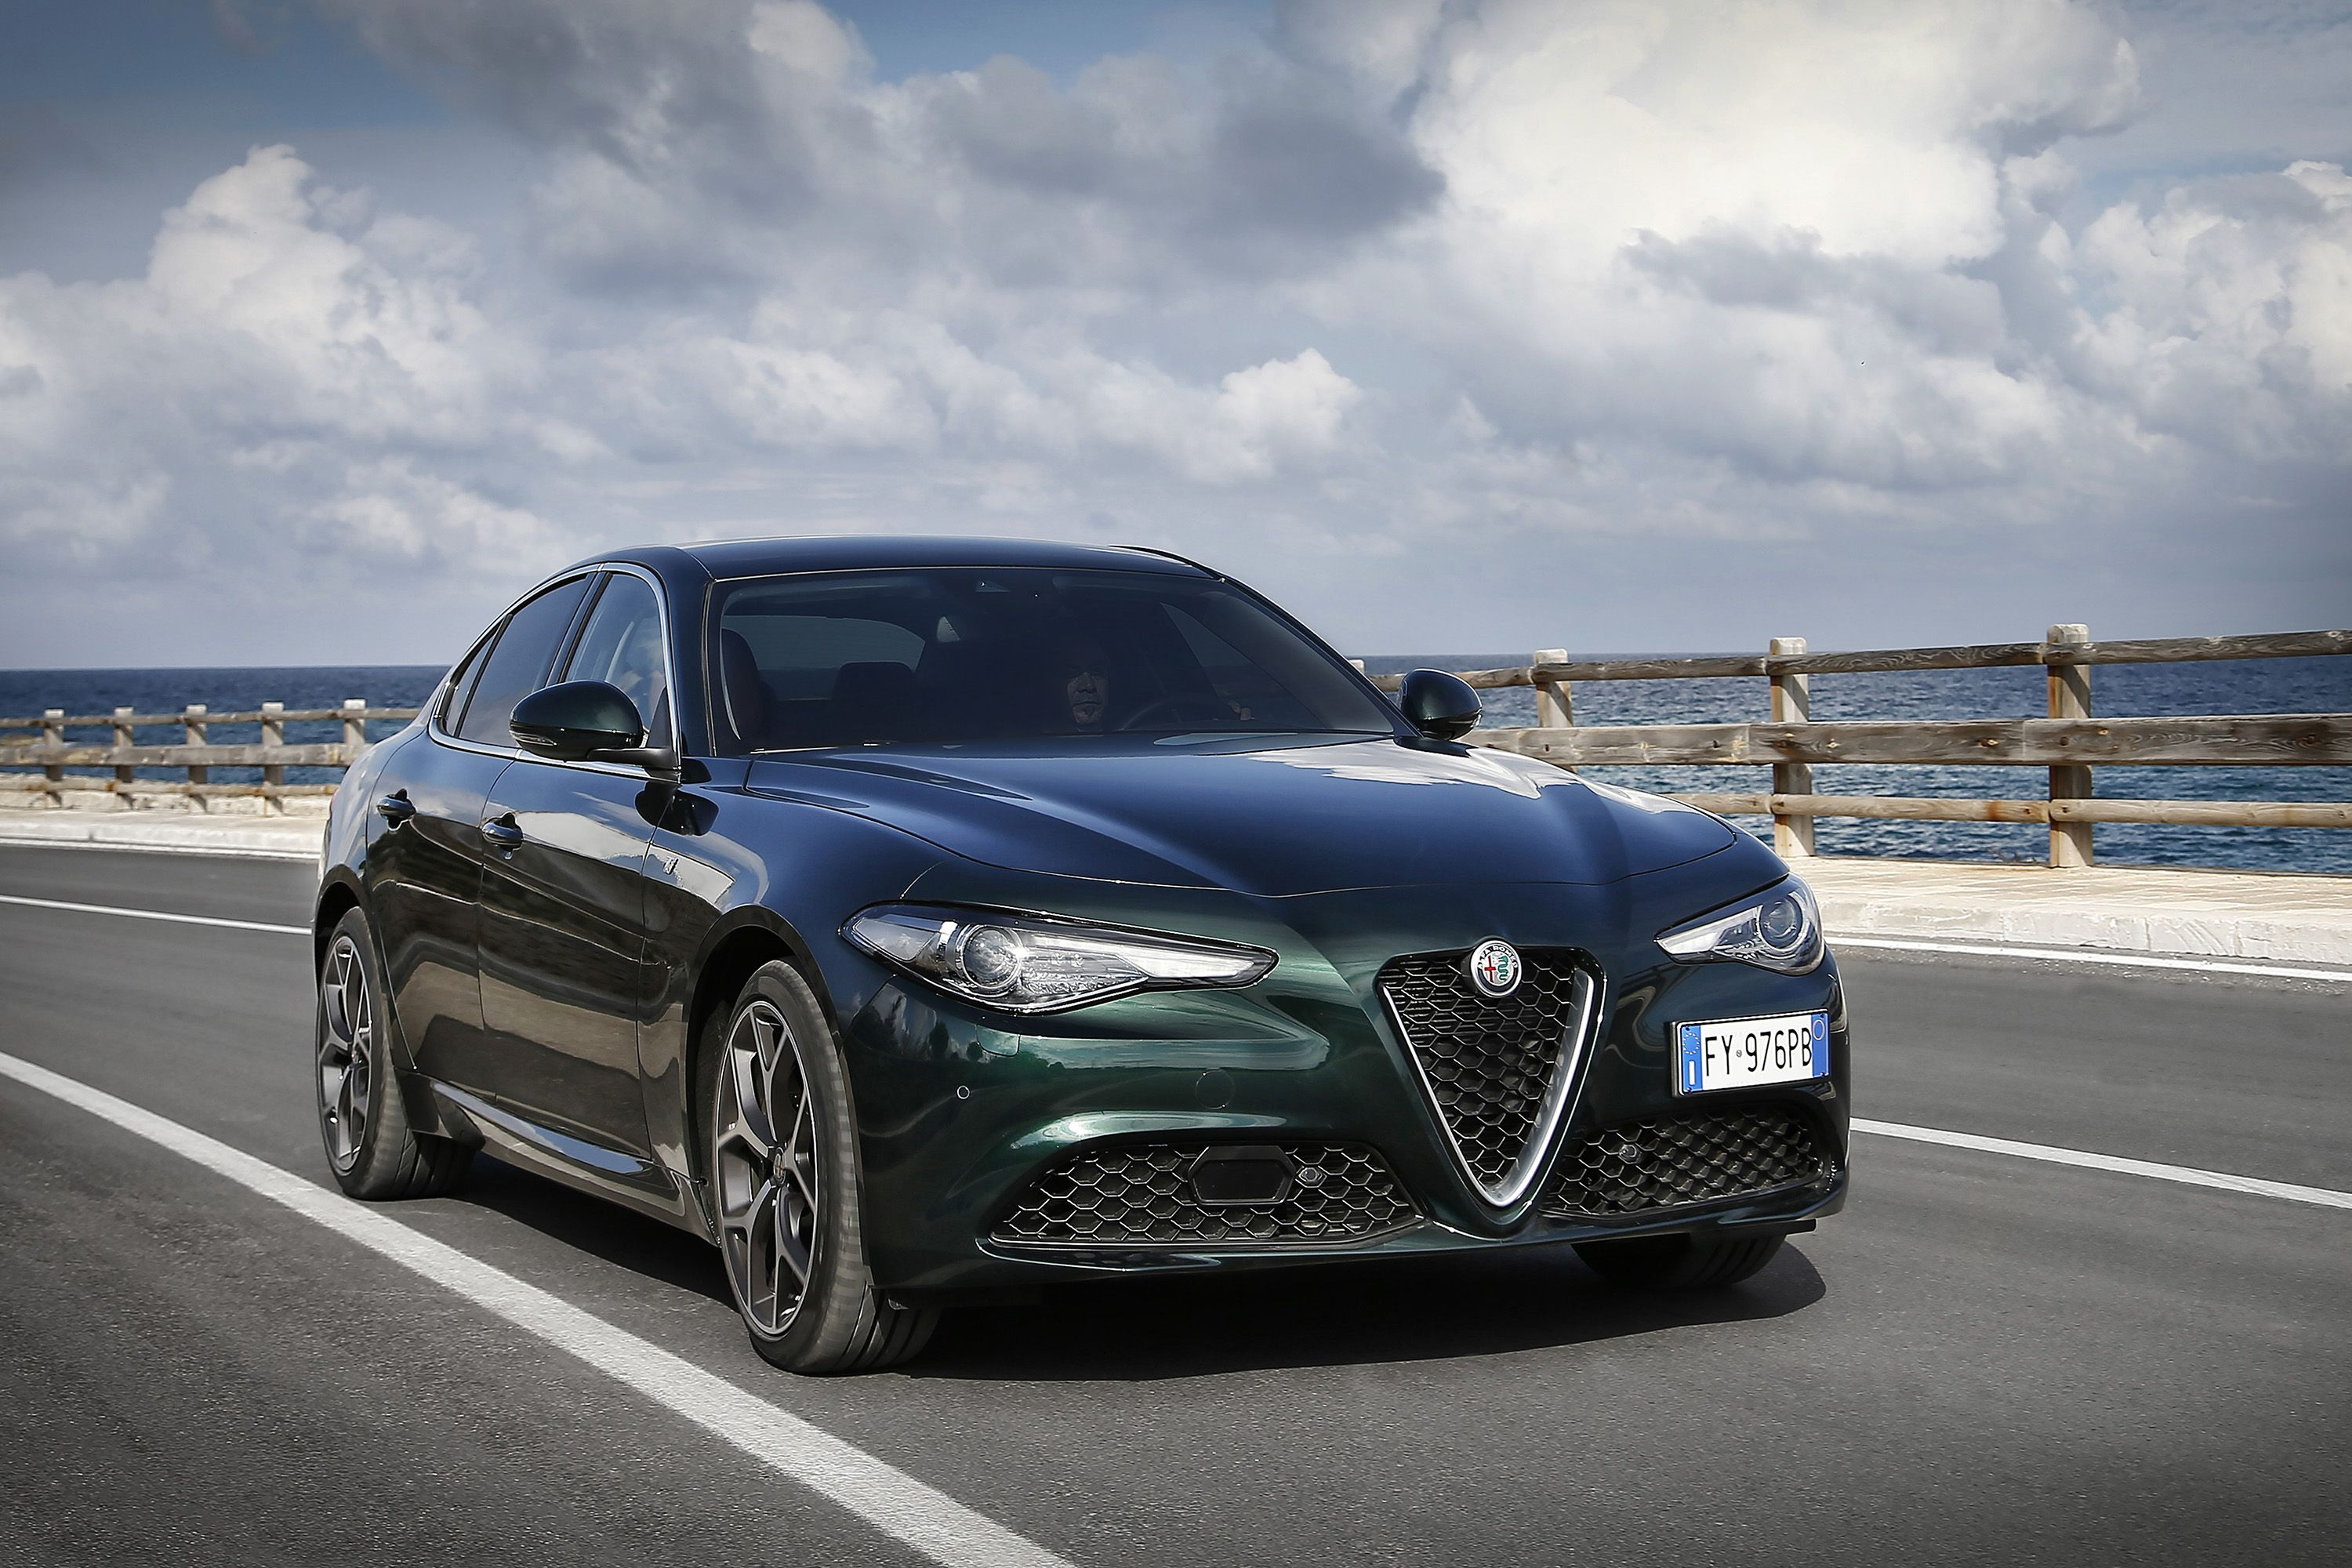 2020 Alfa Romeo Giulia Review Pricing And Specs